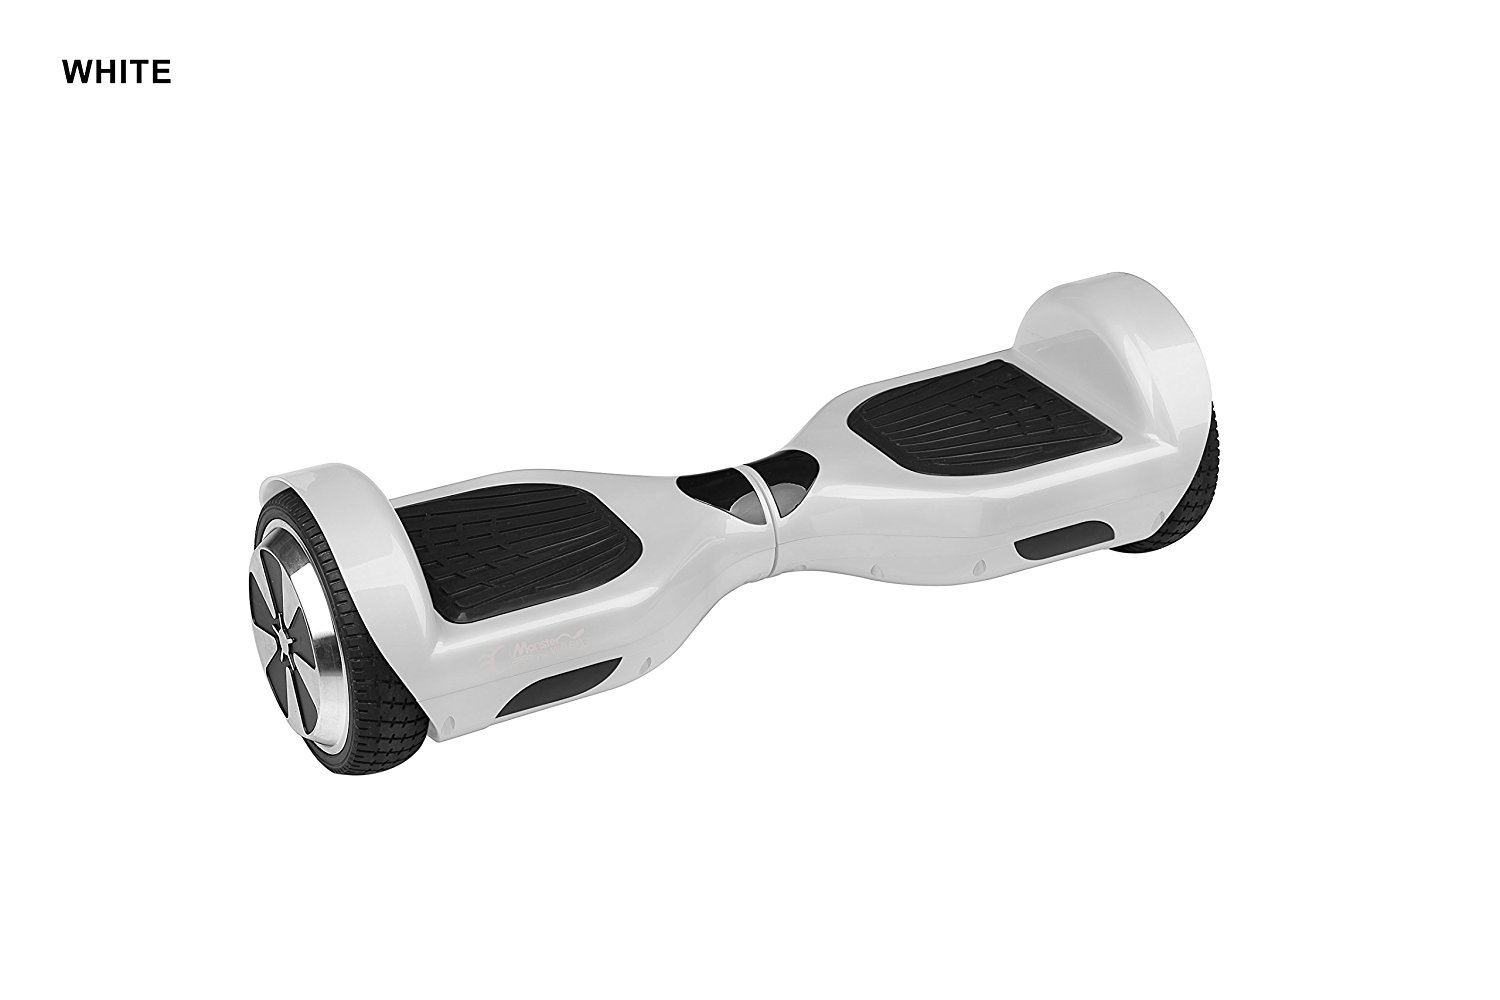 DTC Technologies Model R6 Hoverboard Self-Balancing Scooter UL-2272 Certified